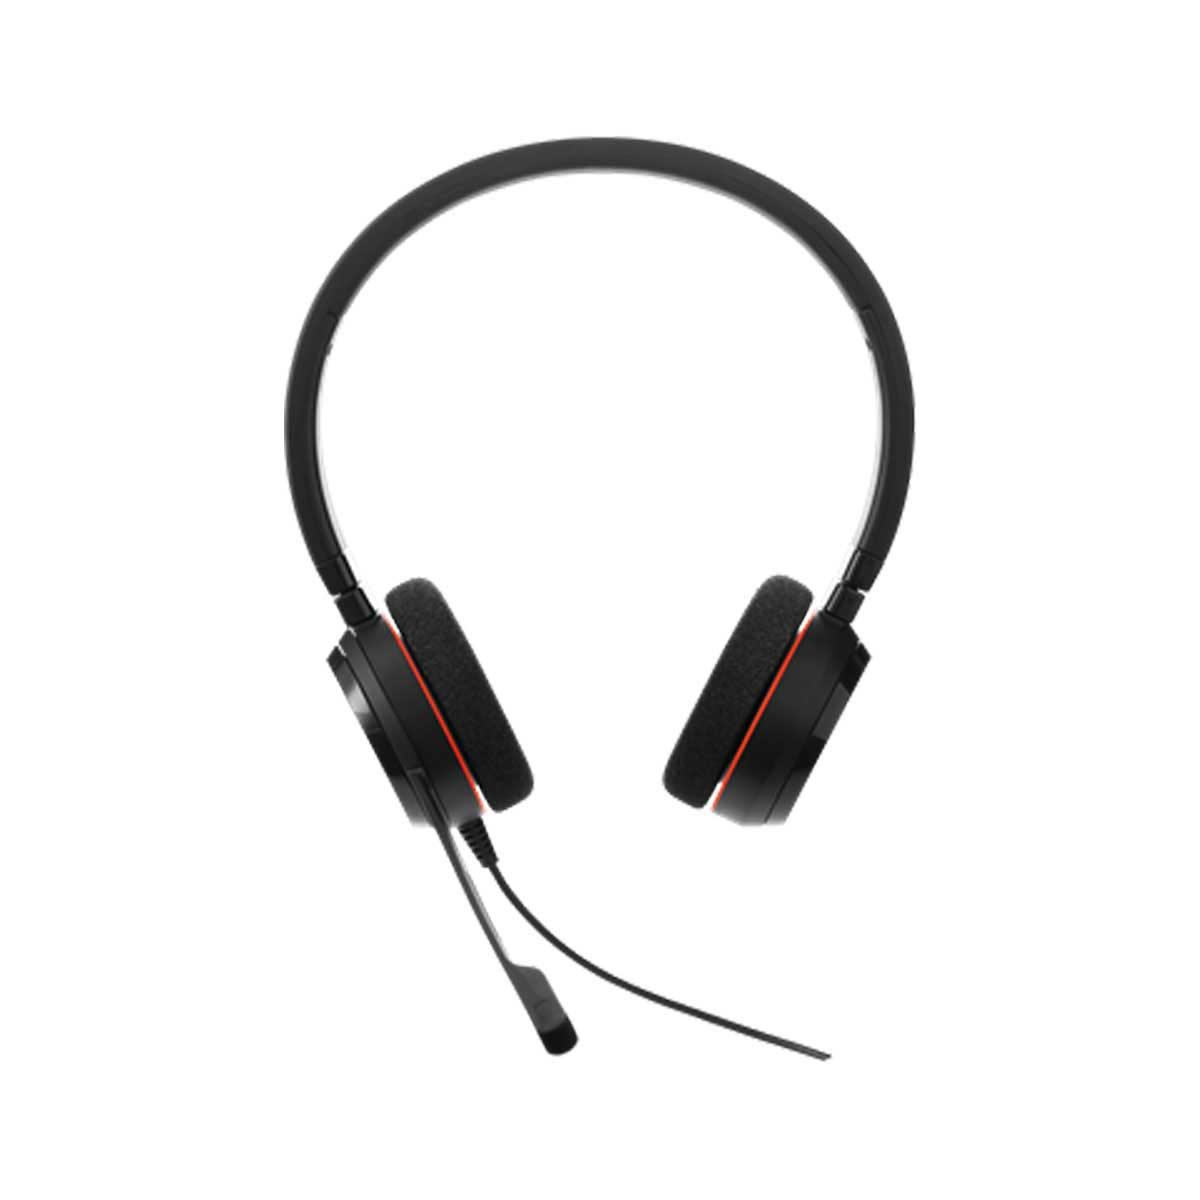 Jabra Stereo Wired USB Headset